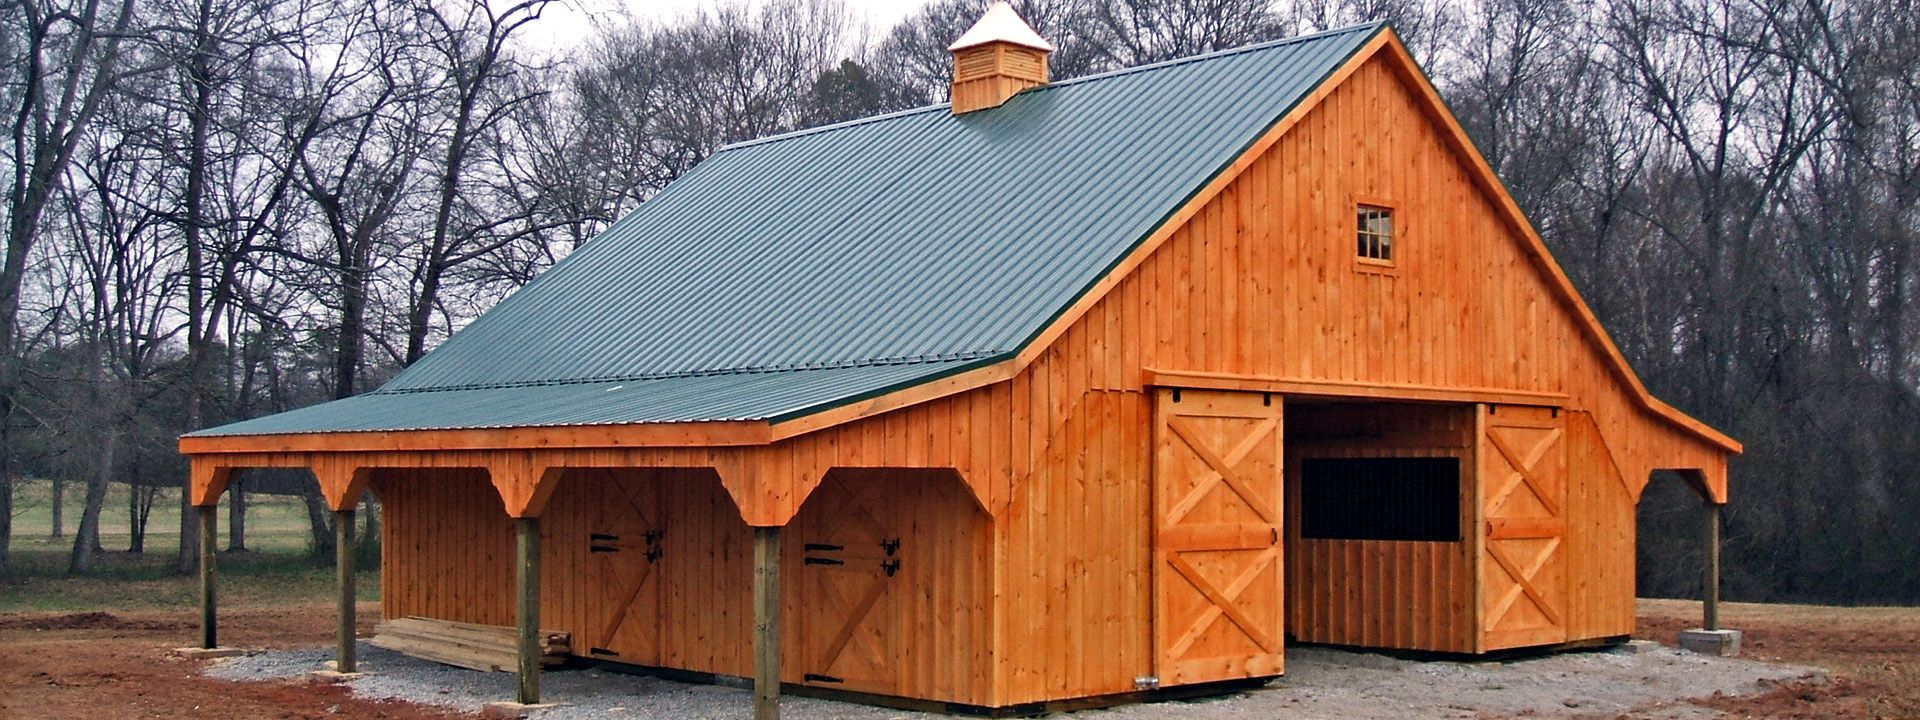 horse kit kits barns equestrian pole american alabama states barn